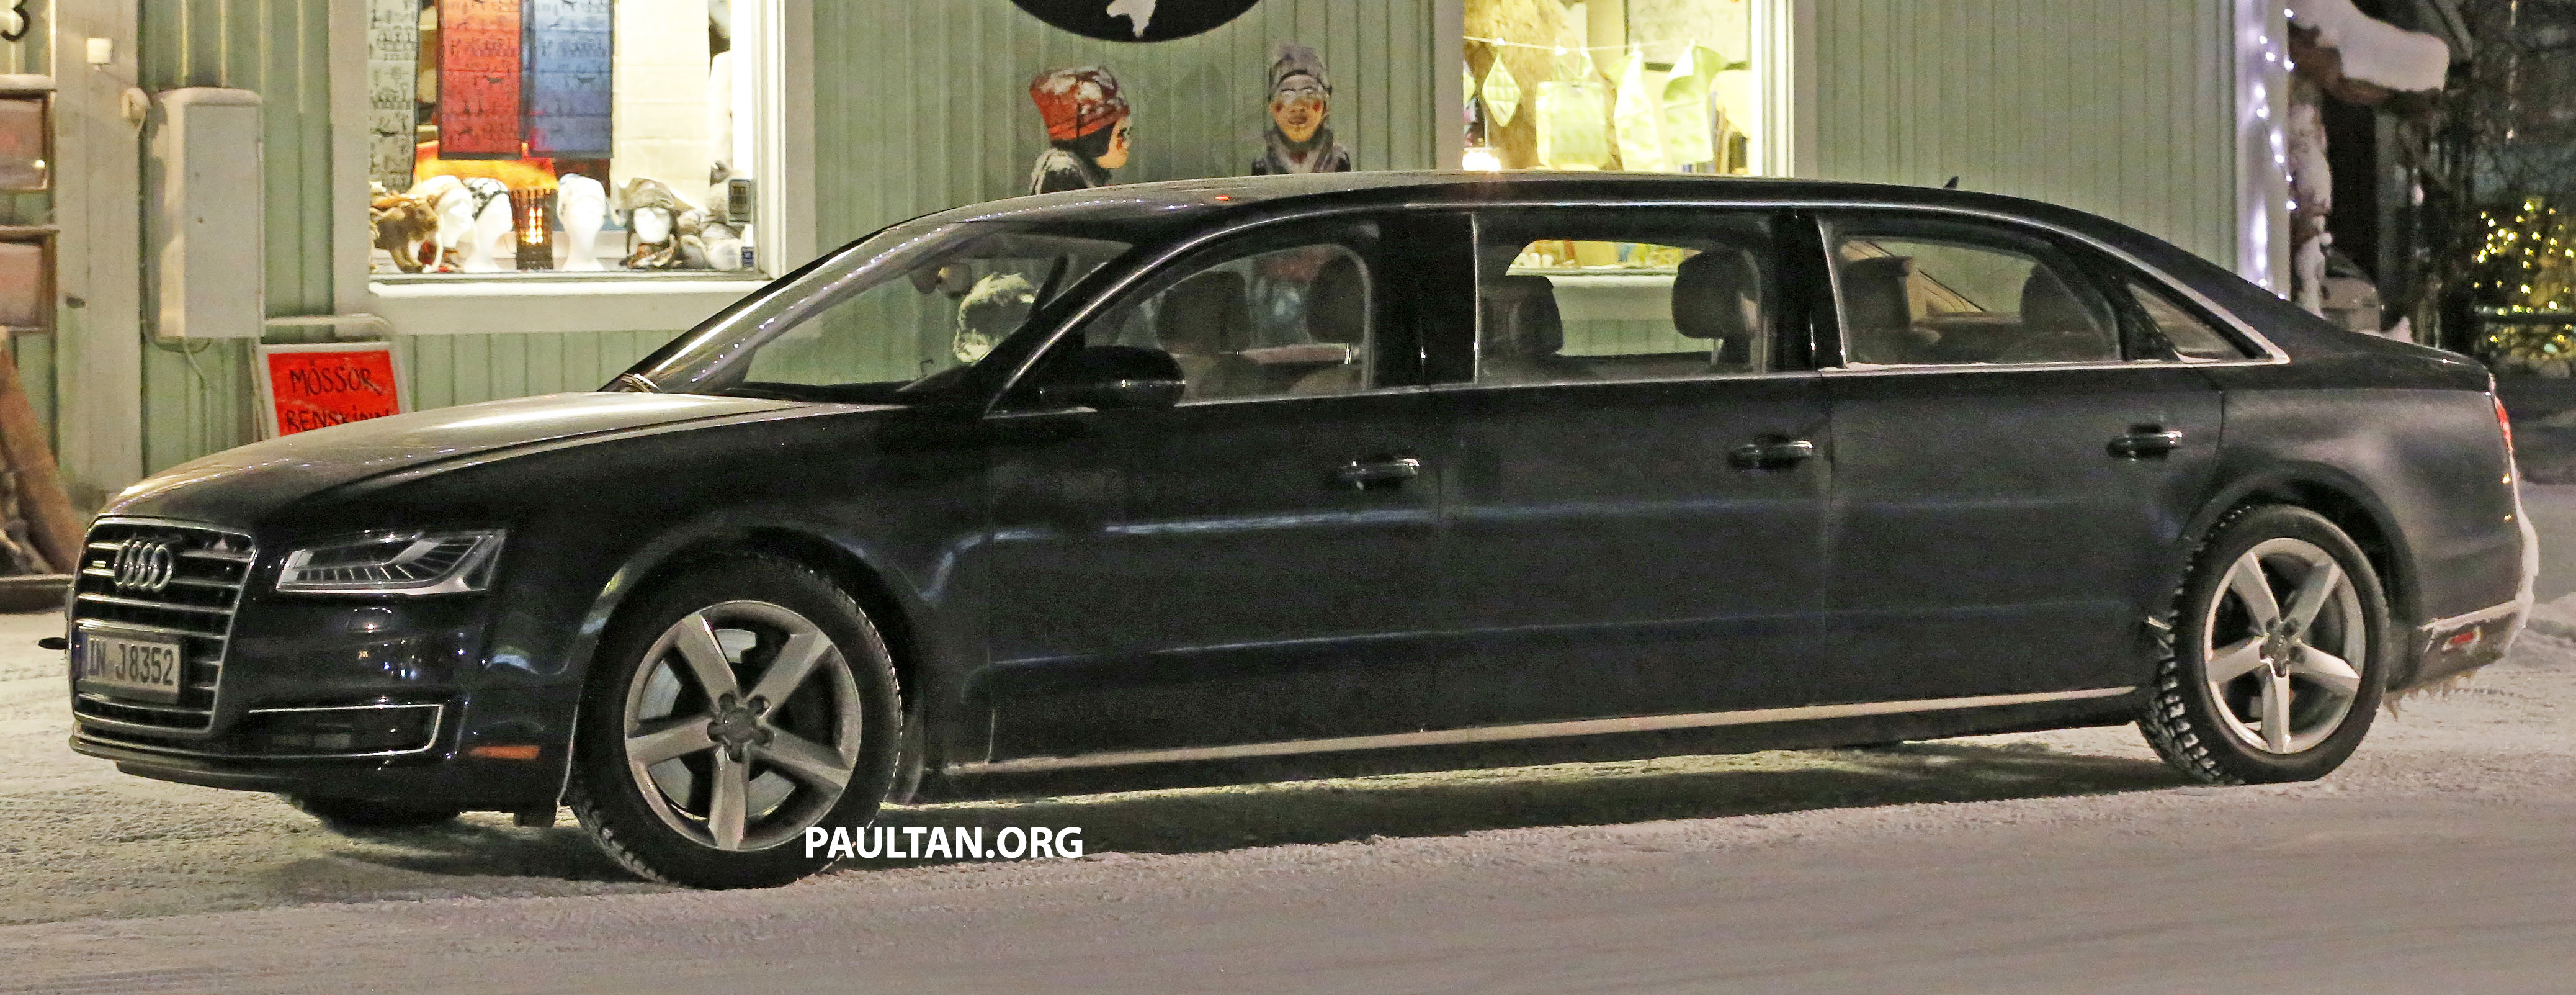 audi a8 stretched limousine with six doors sighted image 434953. Black Bedroom Furniture Sets. Home Design Ideas